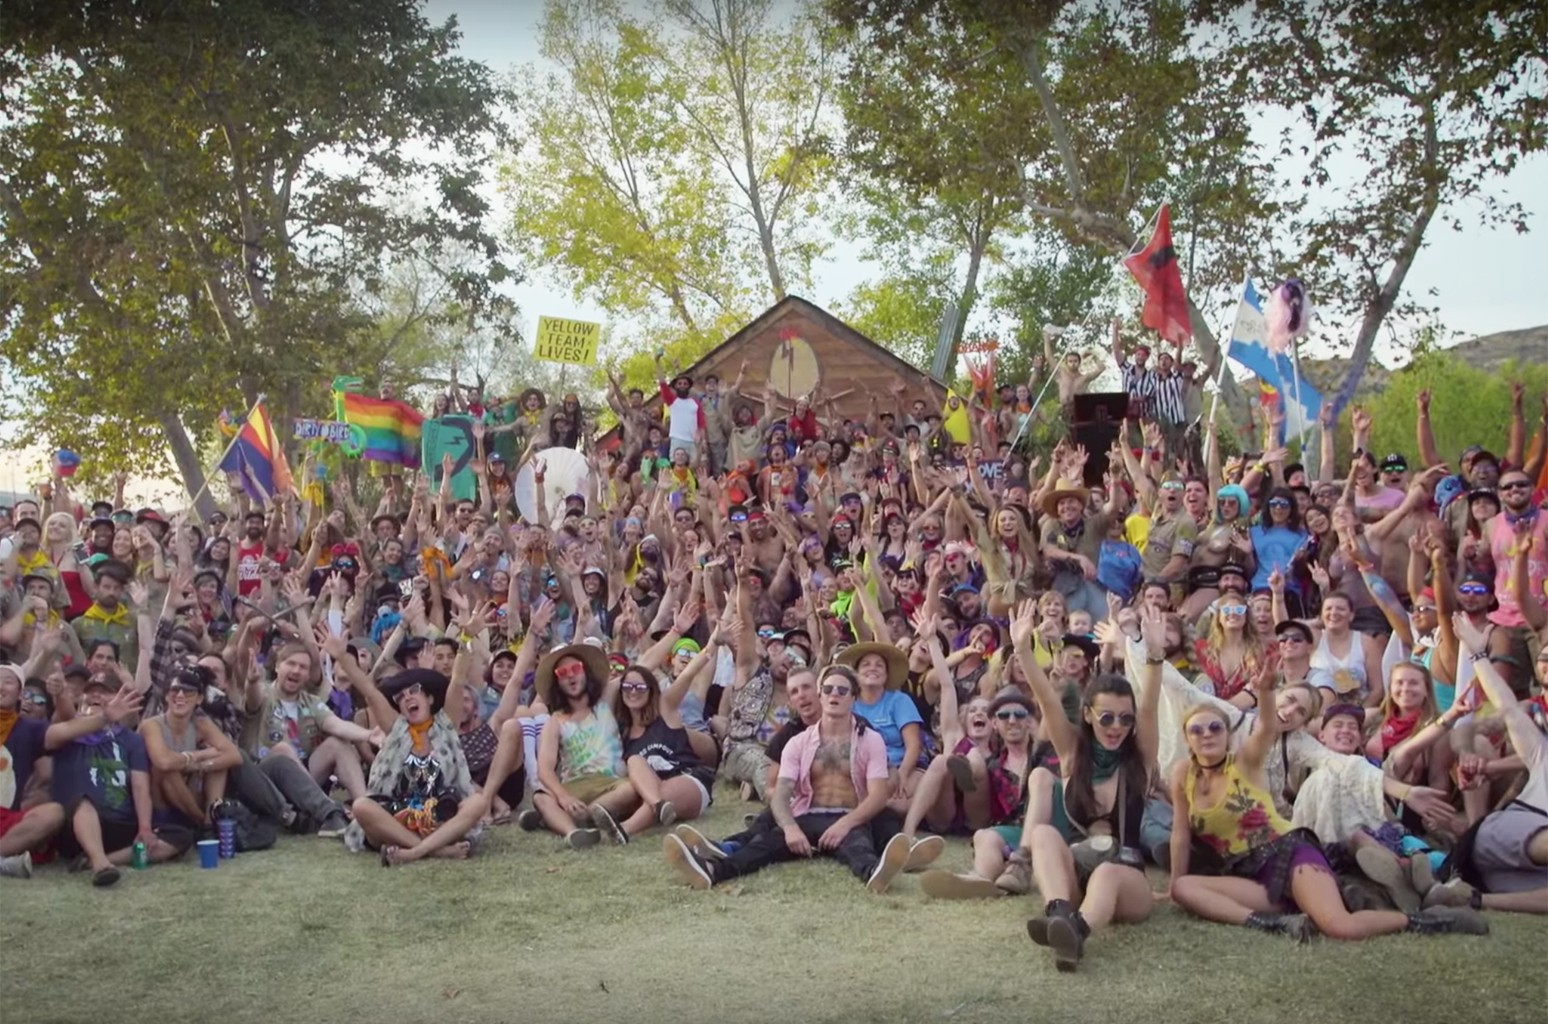 A scene from the Save the Date video for Dirtybird Campout 2017.